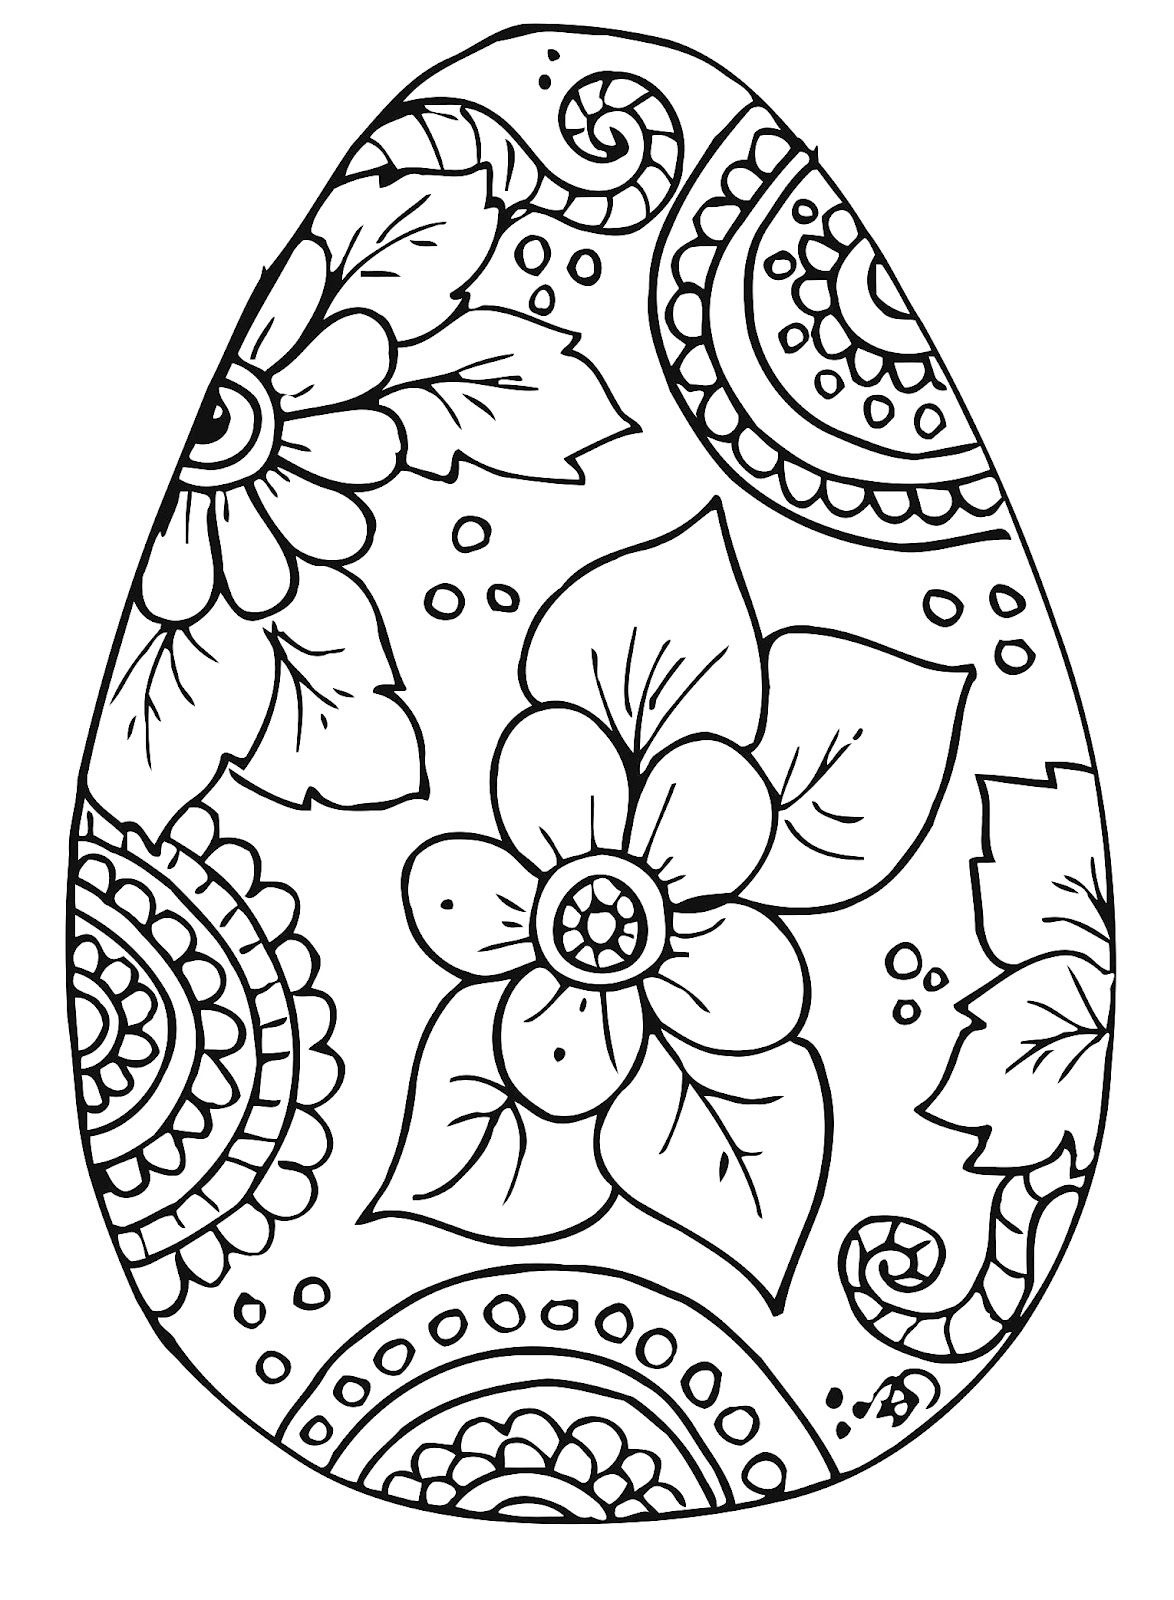 B.d.designs: Free Coloring Page Easter / Kleurplaat Pasen | Pasen - Free Coloring Pages Com Printable